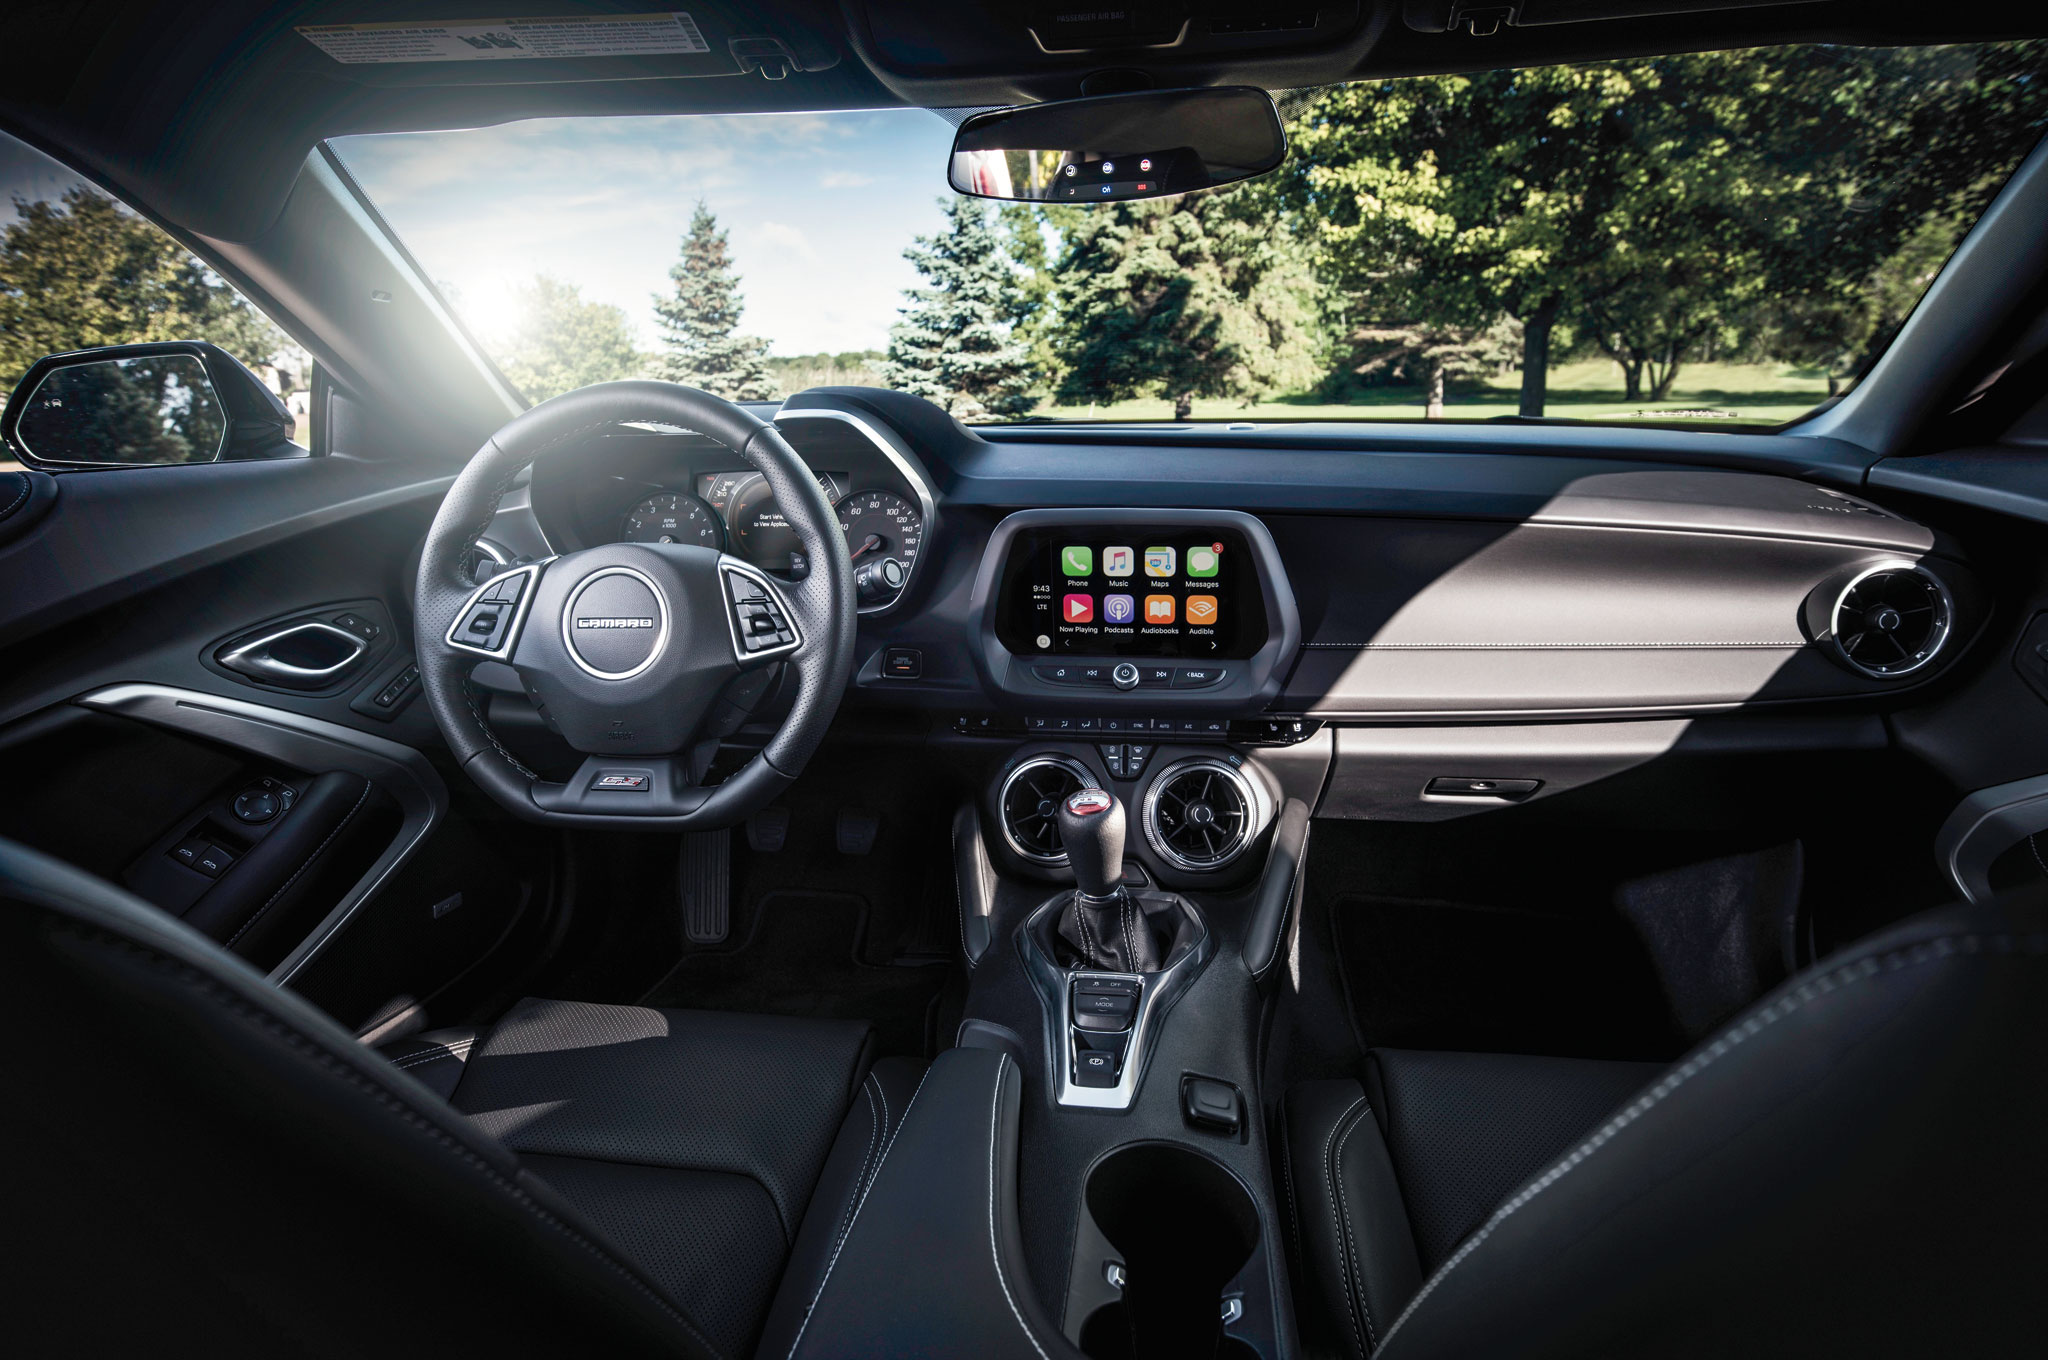 Inside the lean new Camaro, you'll find a tech-friendly, modernized interior with a flat-bottom steering wheel.